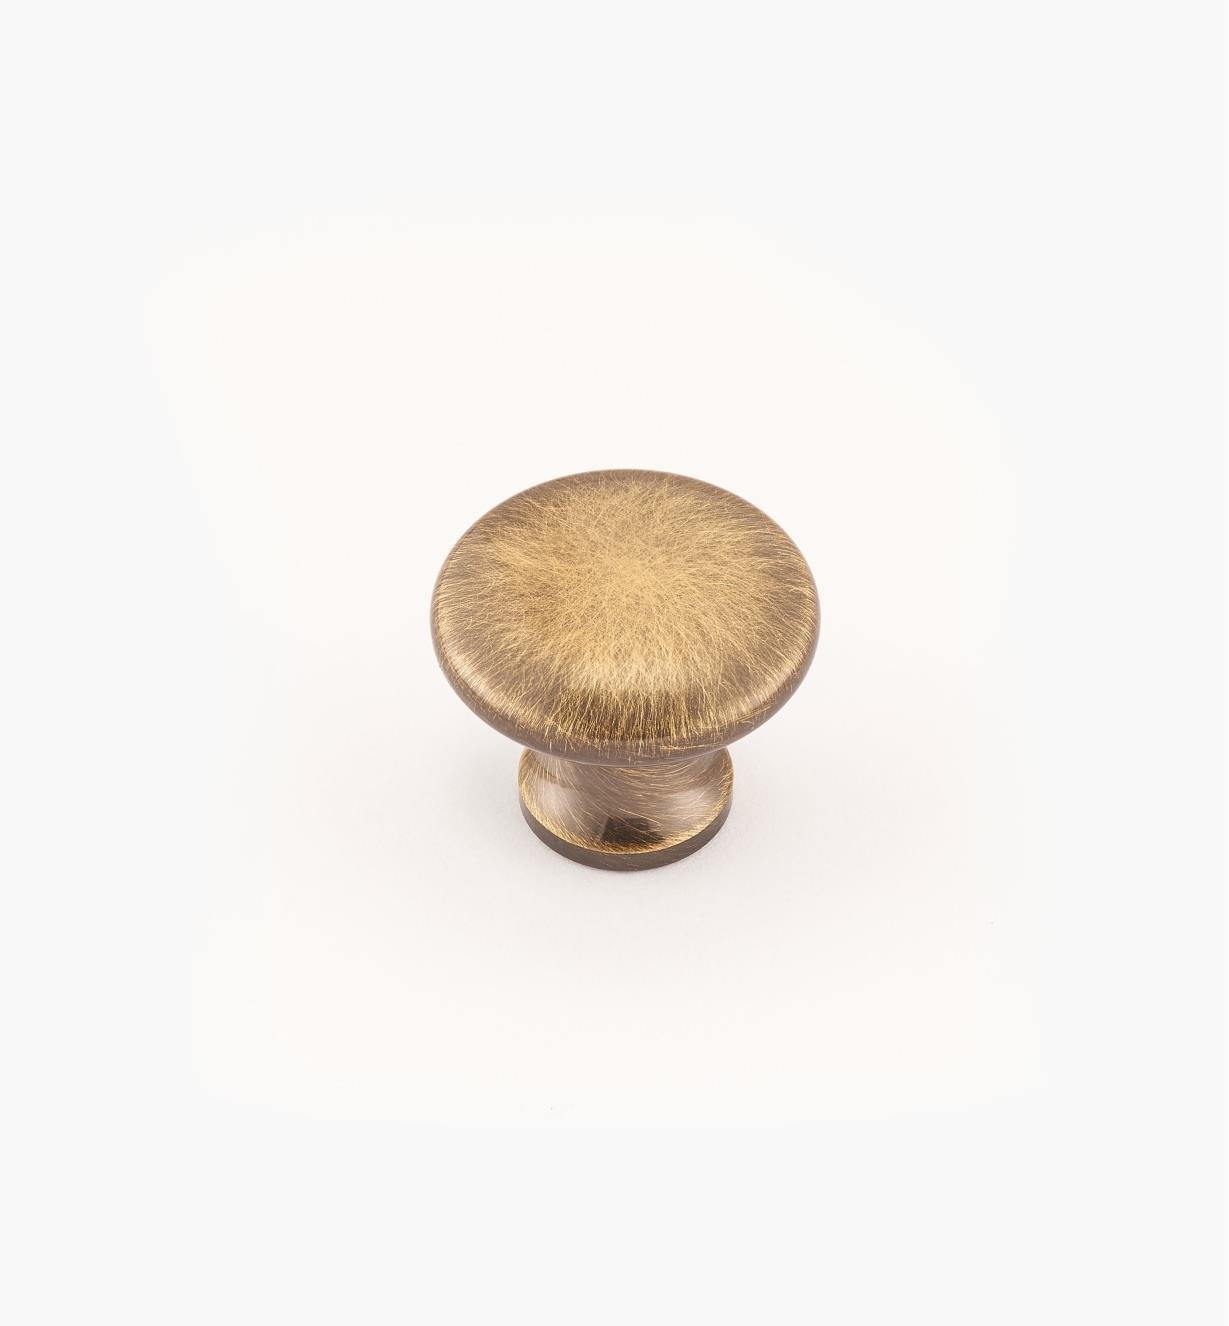 "02W2719 - Antique Brass Suite - 3/4"" x 5/8"" Round Brass Knob"